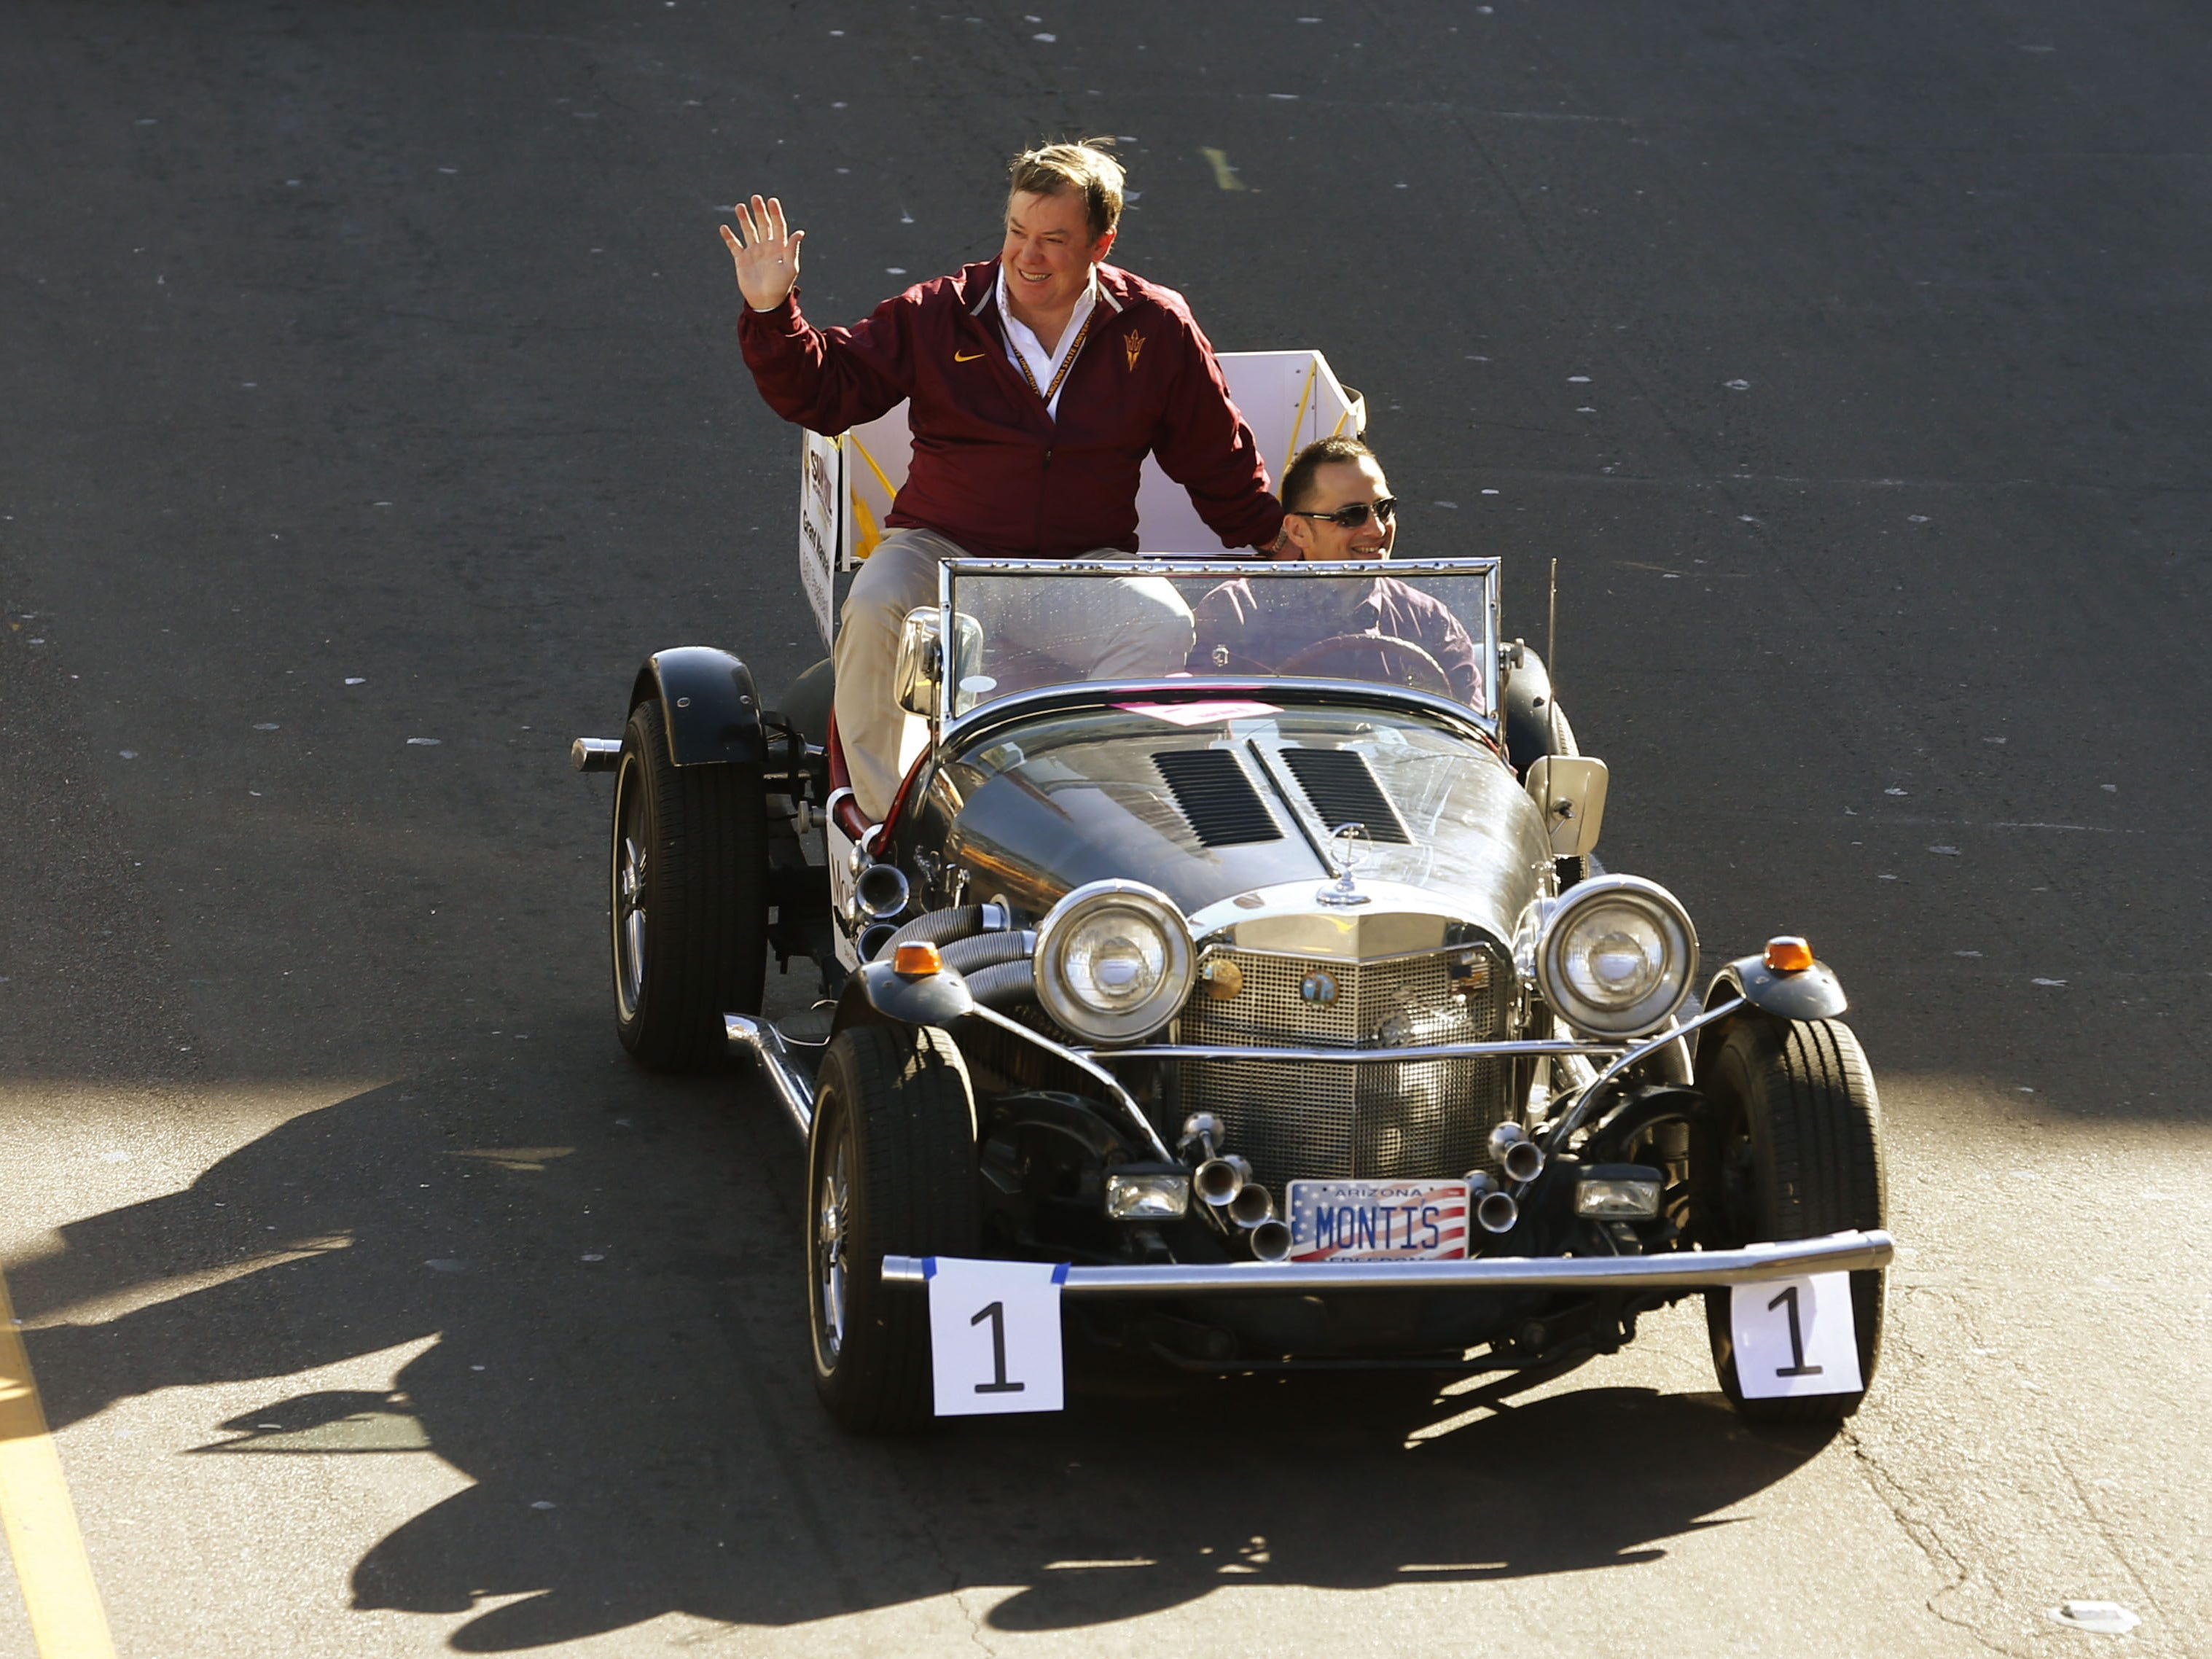 ASU President Michael Crow waves to alumni during the 2012 ASU Homecoming parade in Tempe.